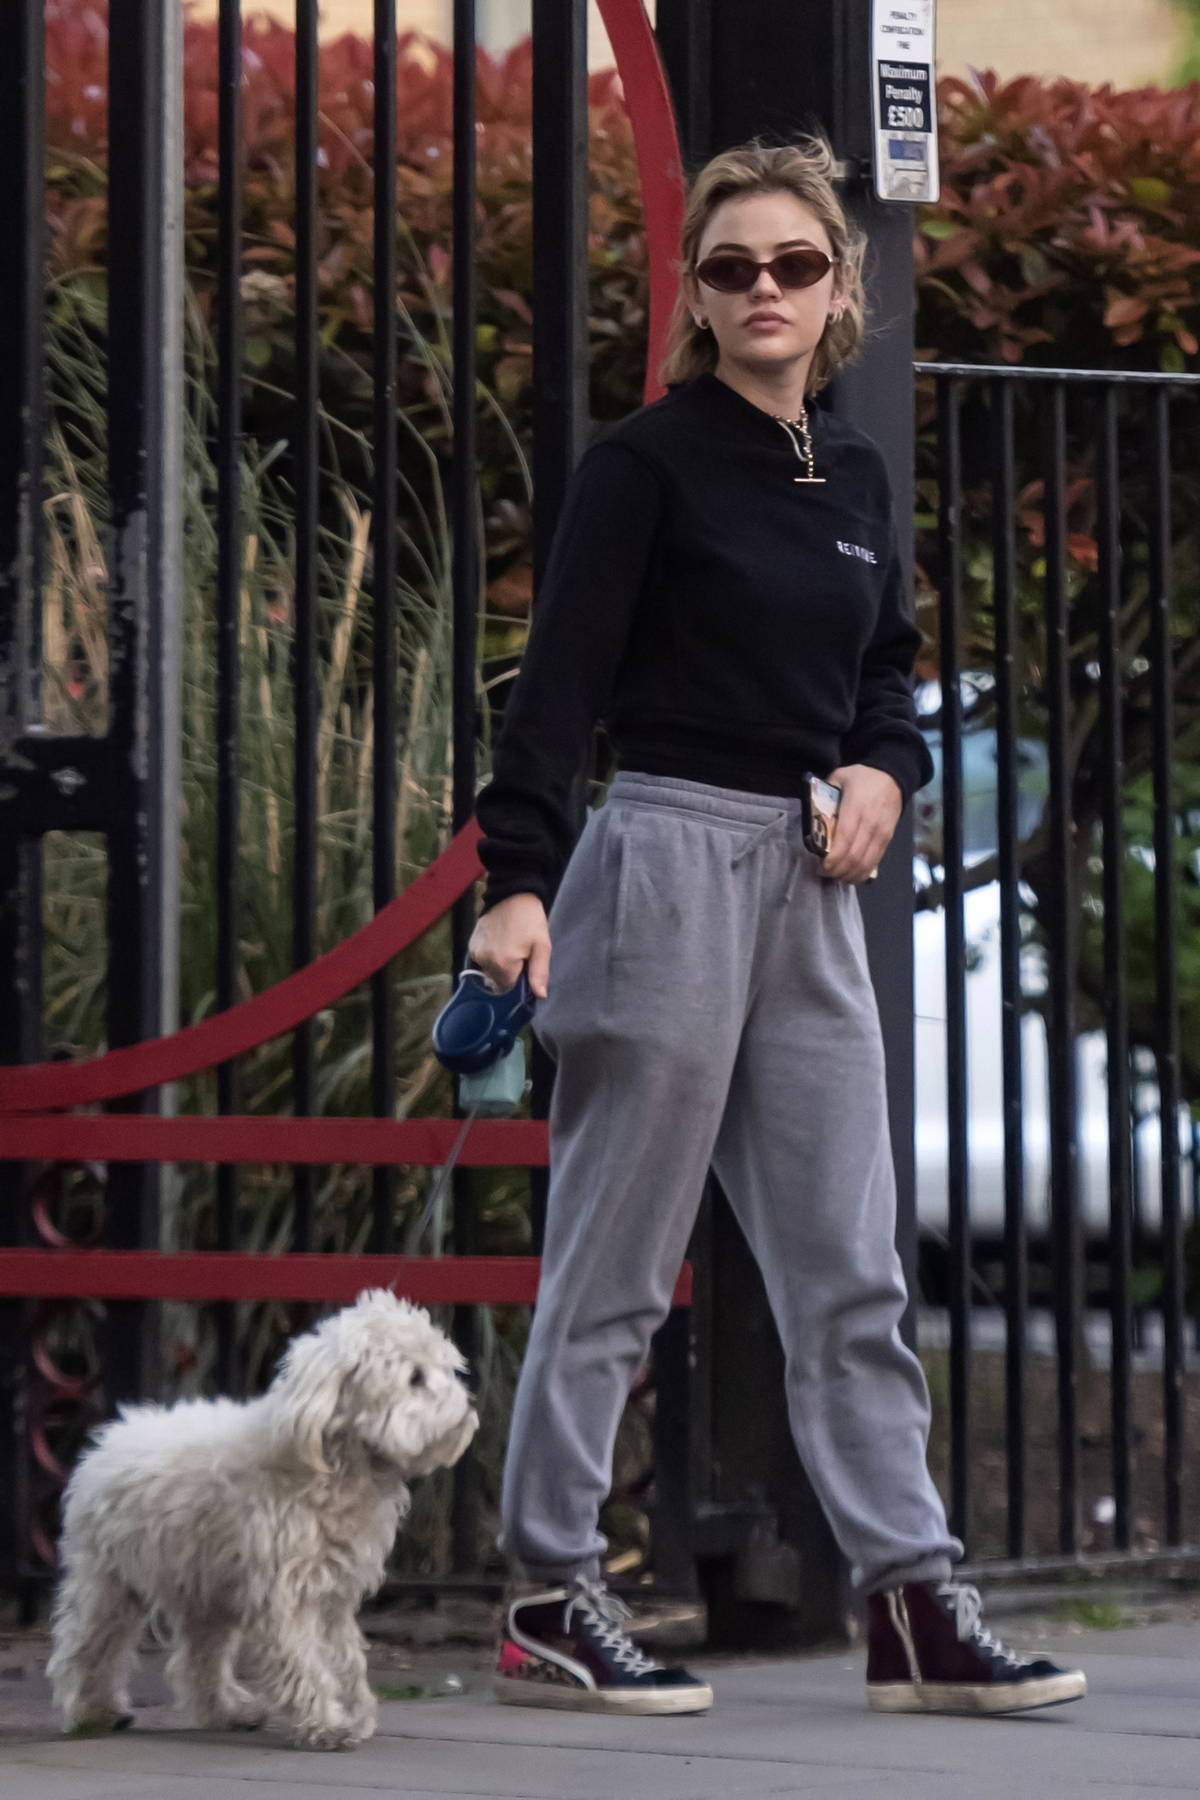 Lucy Hale stays comfy in sweats as she steps out to walk her dog Elvis in London, UK